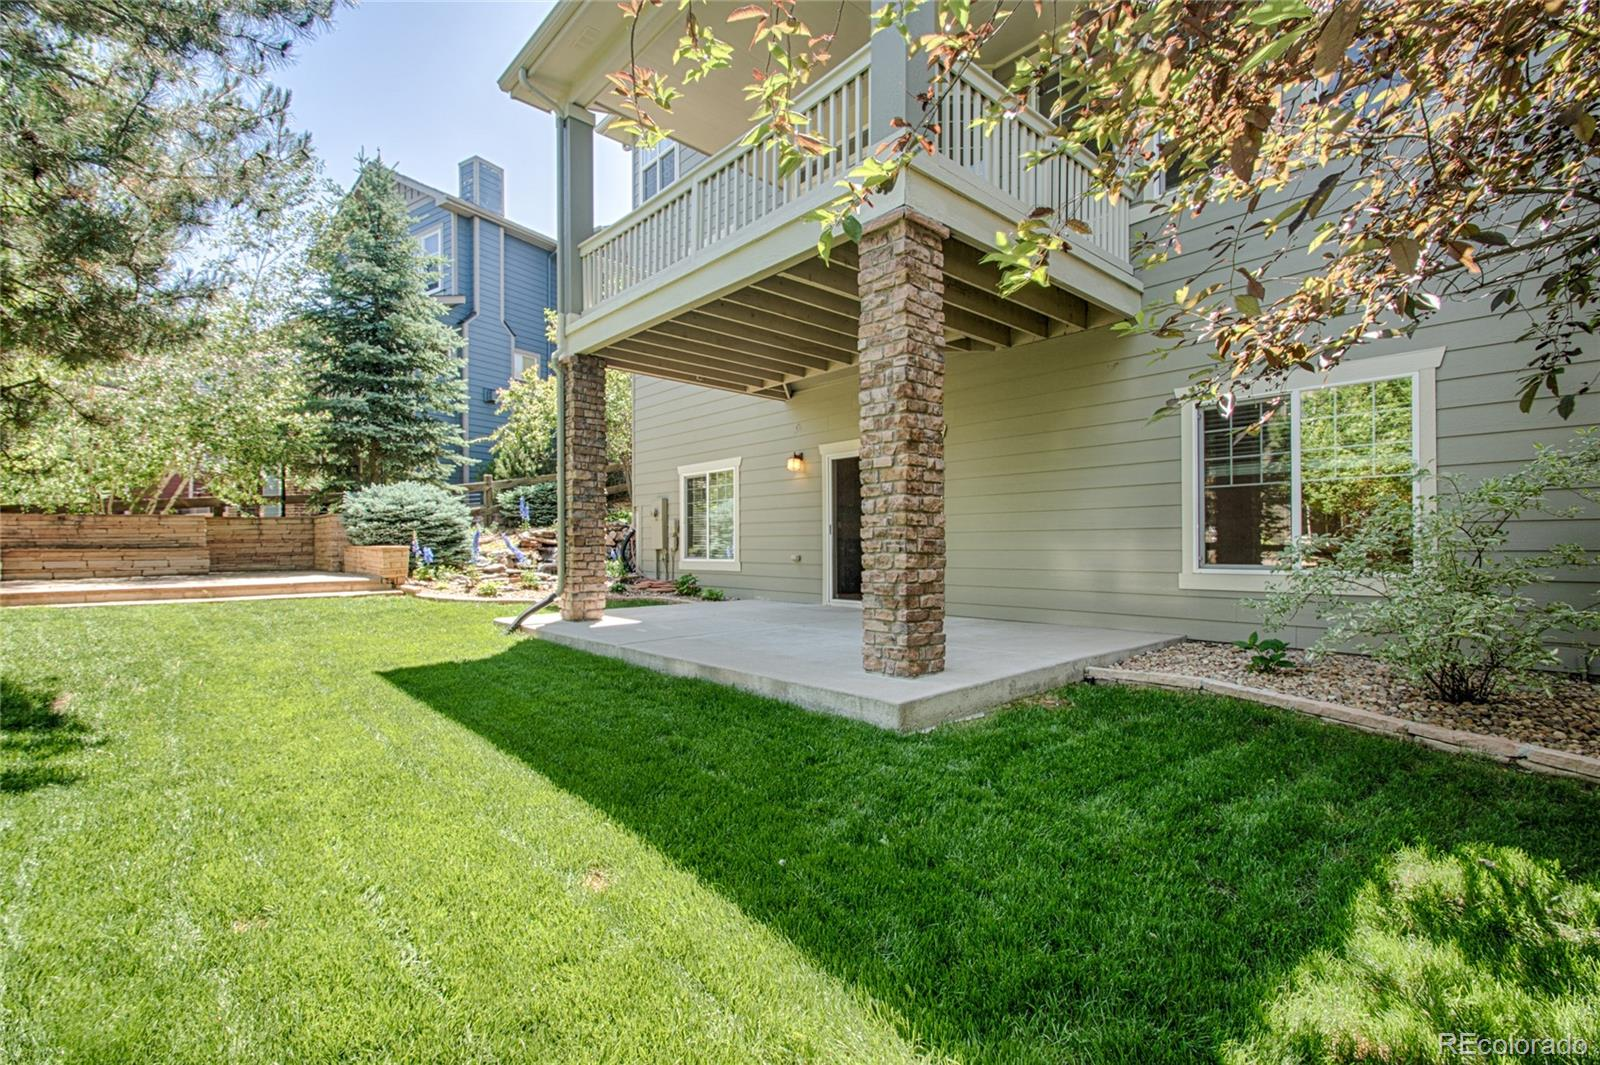 MLS# 6477301 - 25045 E Park Crescent Drive, Aurora, CO 80016